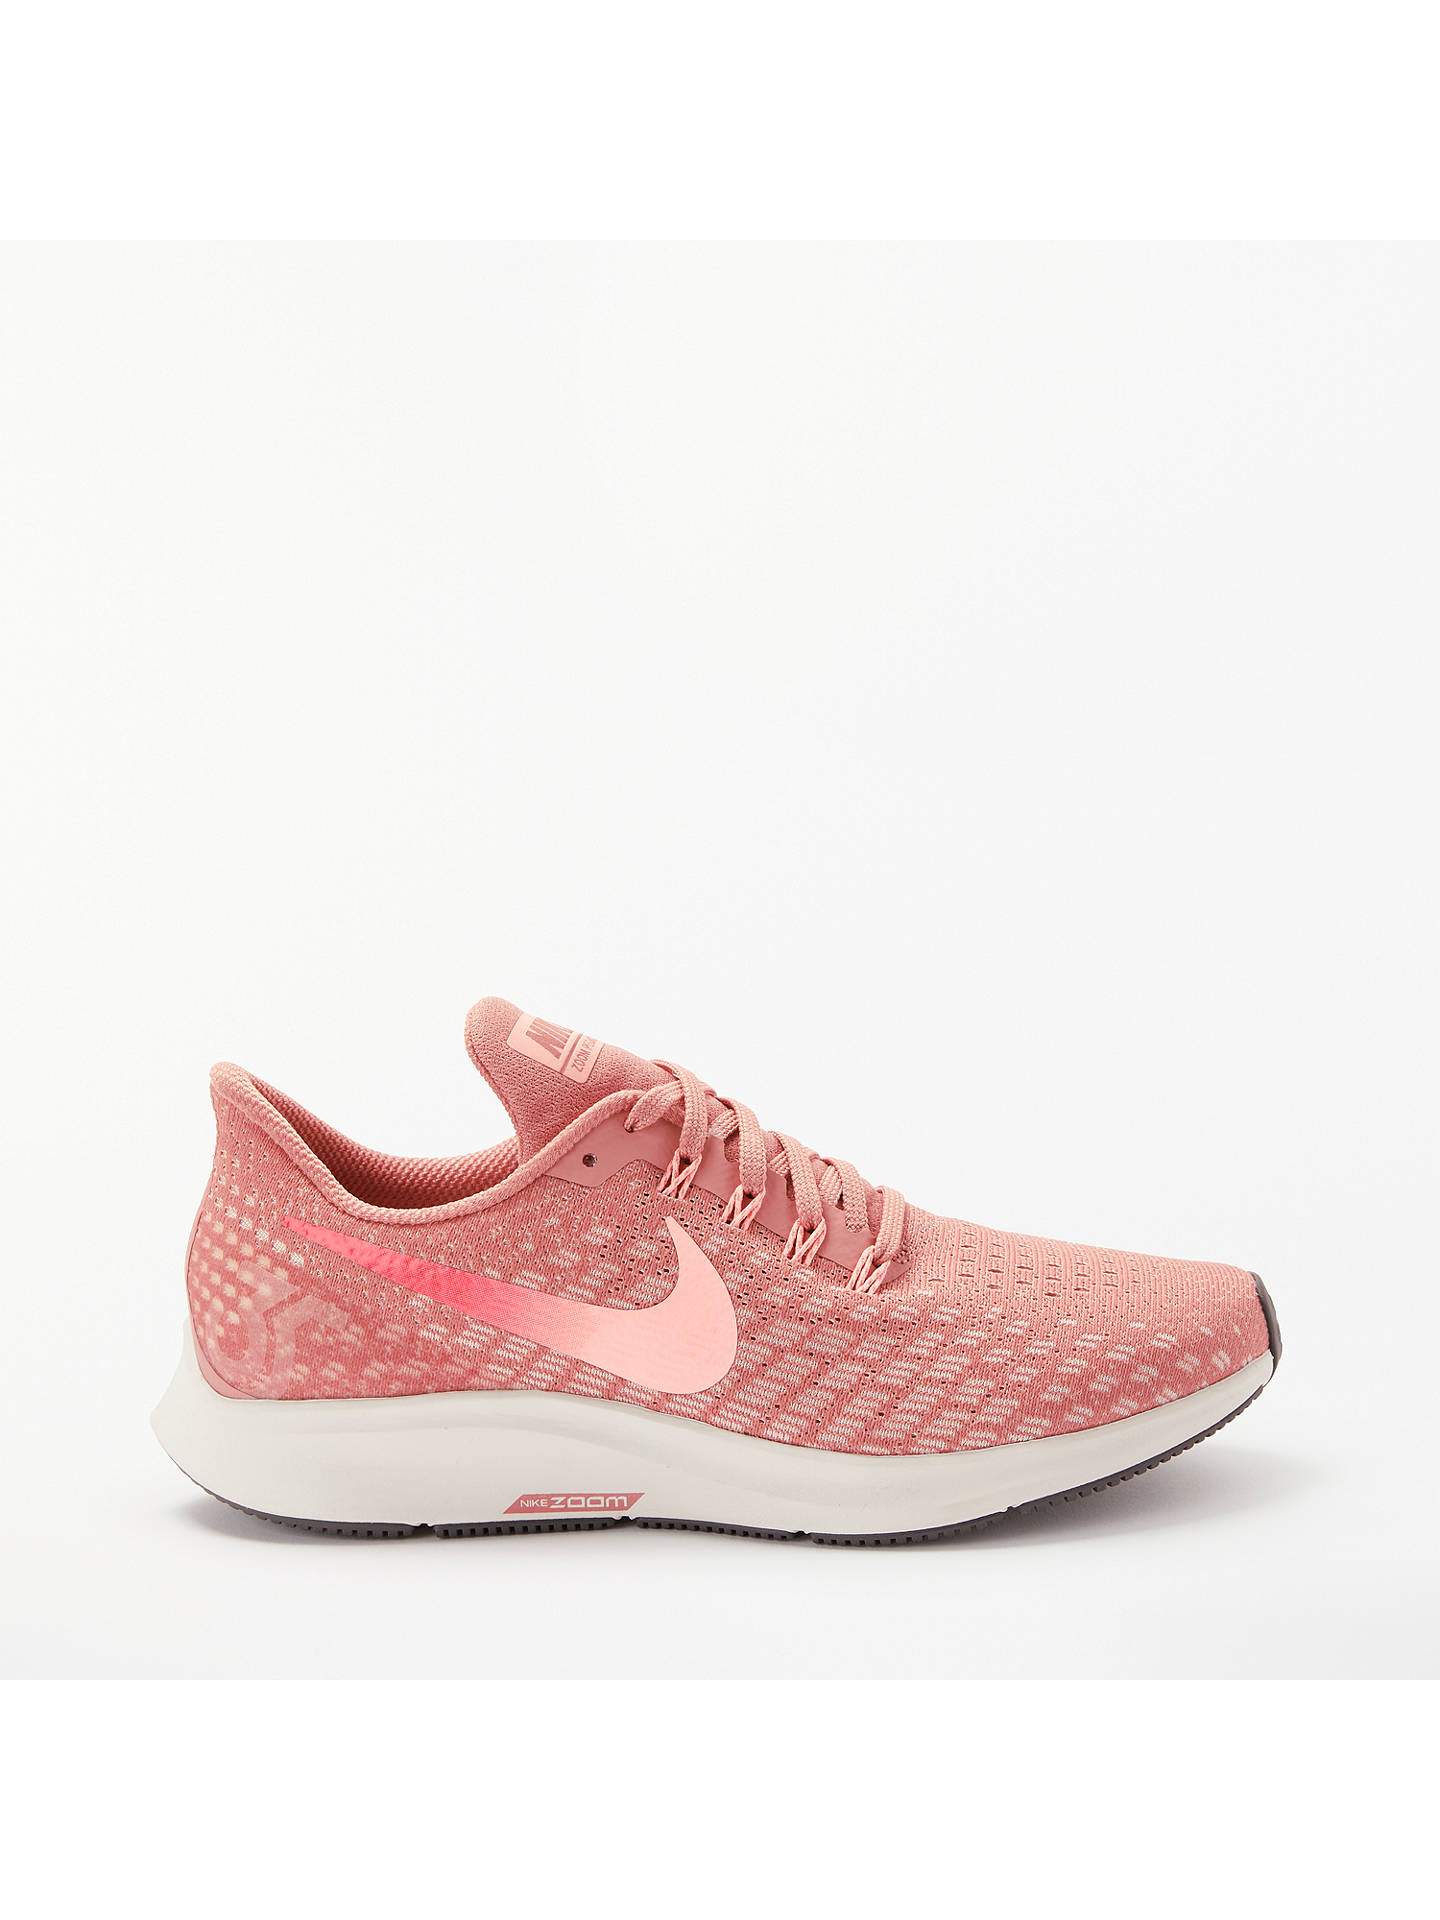 94fcb0b7739d9 Nike Air Zoom Pegasus 35 Women s Running Shoes at John Lewis   Partners